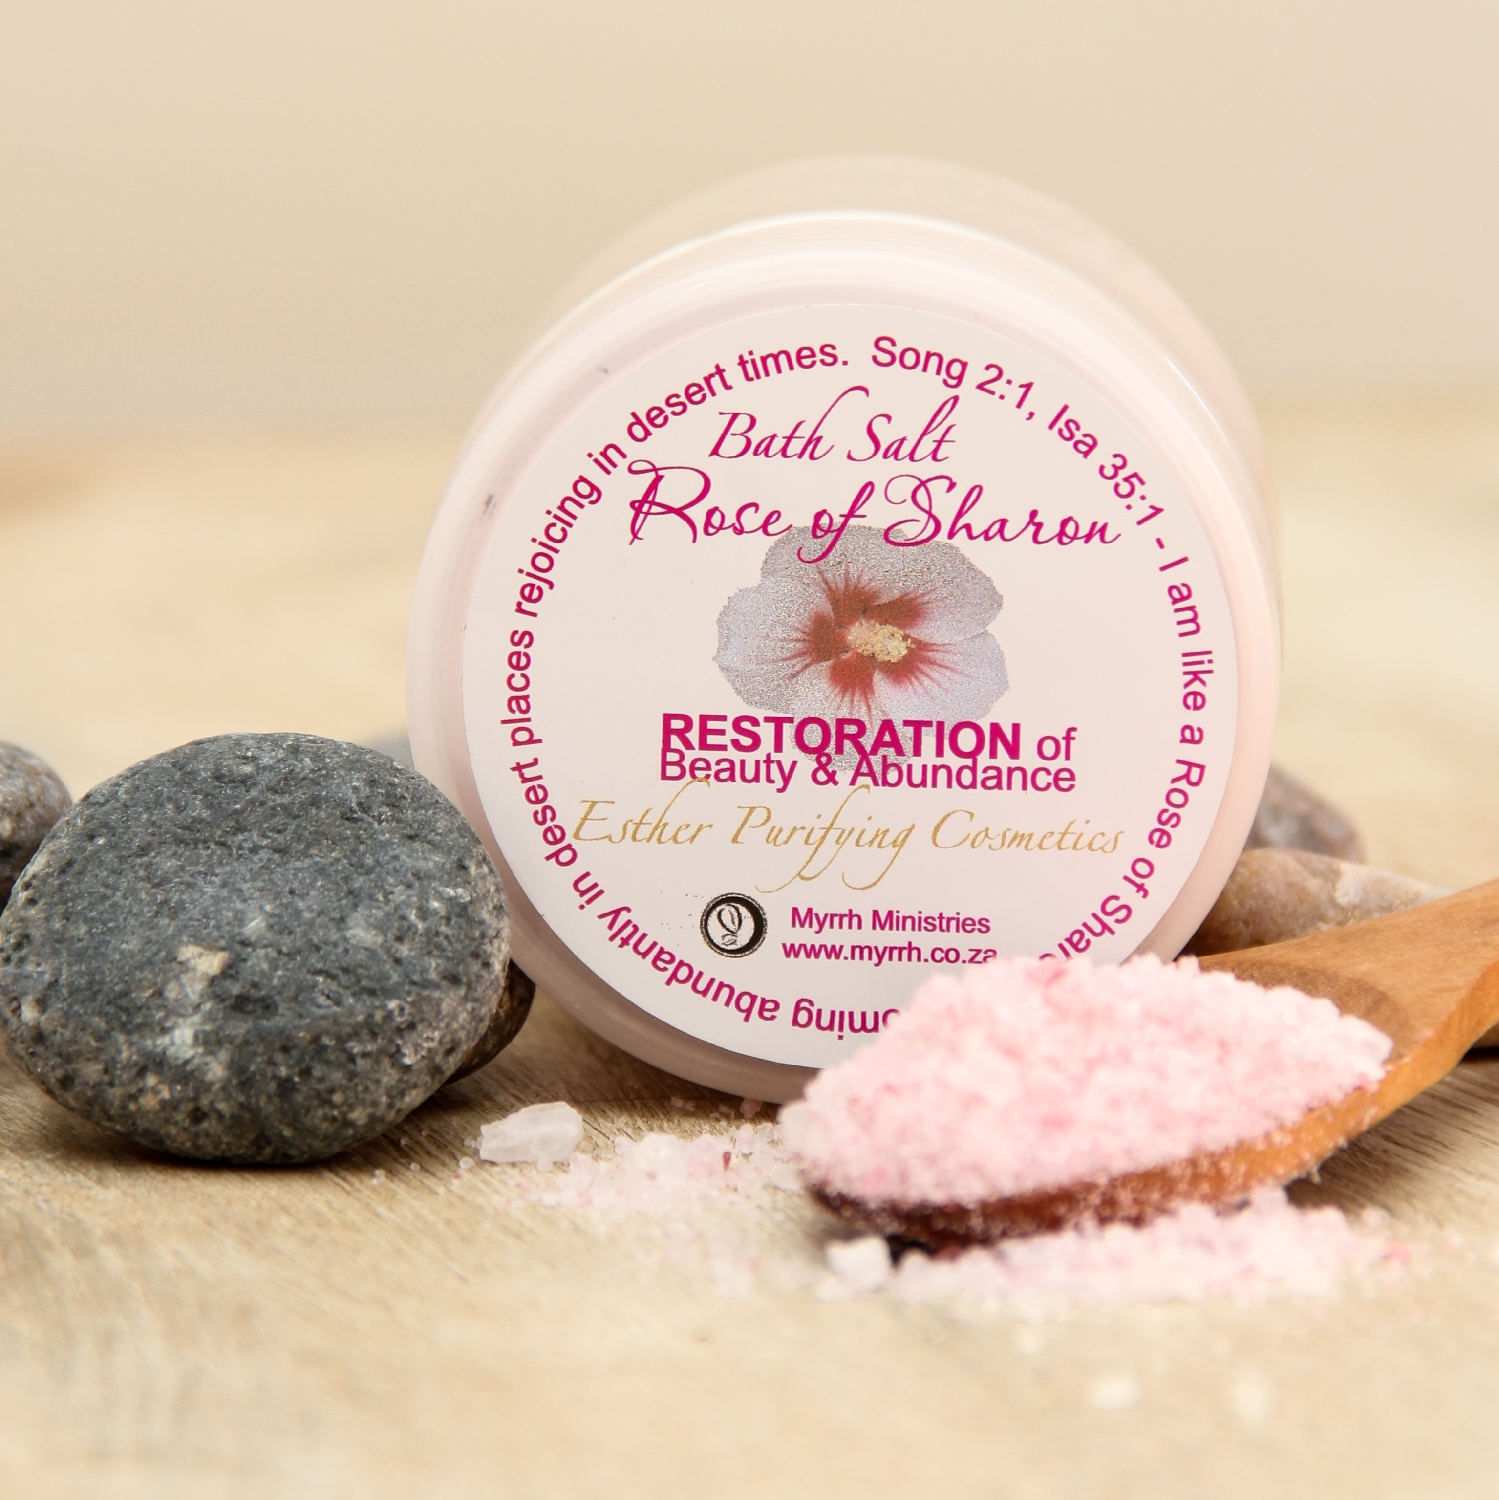 rose-of-sharon-bath-salt